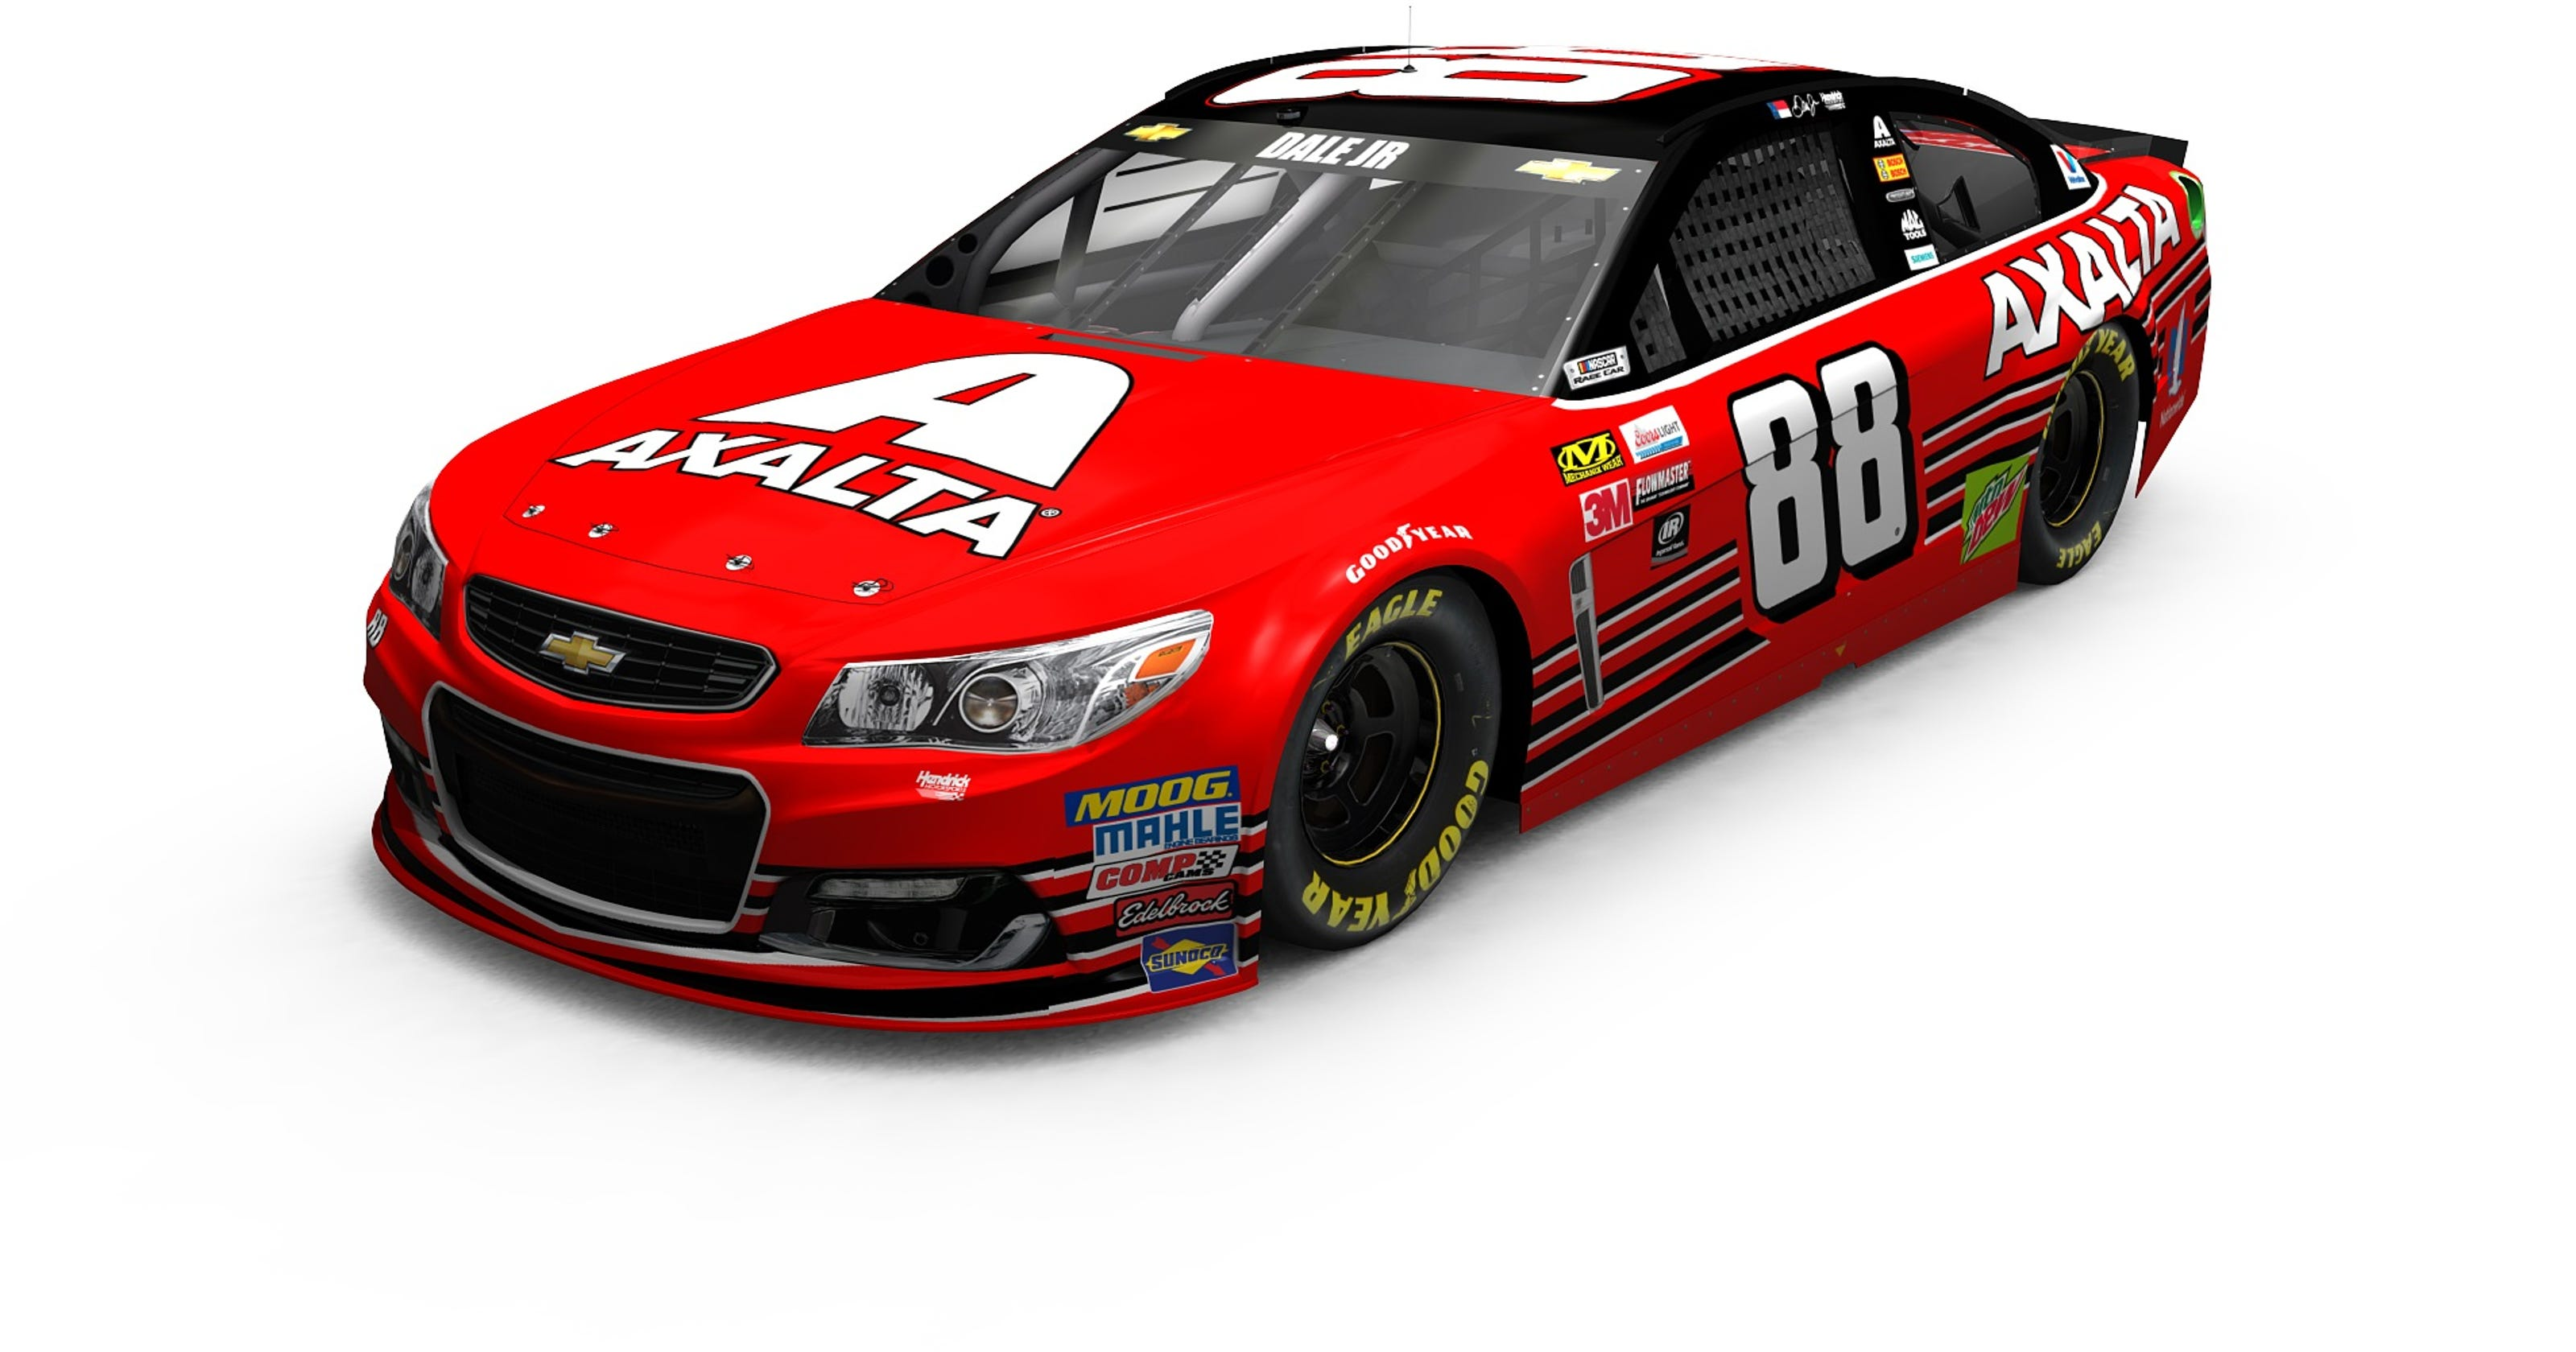 1080 Best Images About Nascar And Dale Jr On Pinterest: Dale Earnhardt Jr. Unveils Special Paint Scheme For Final